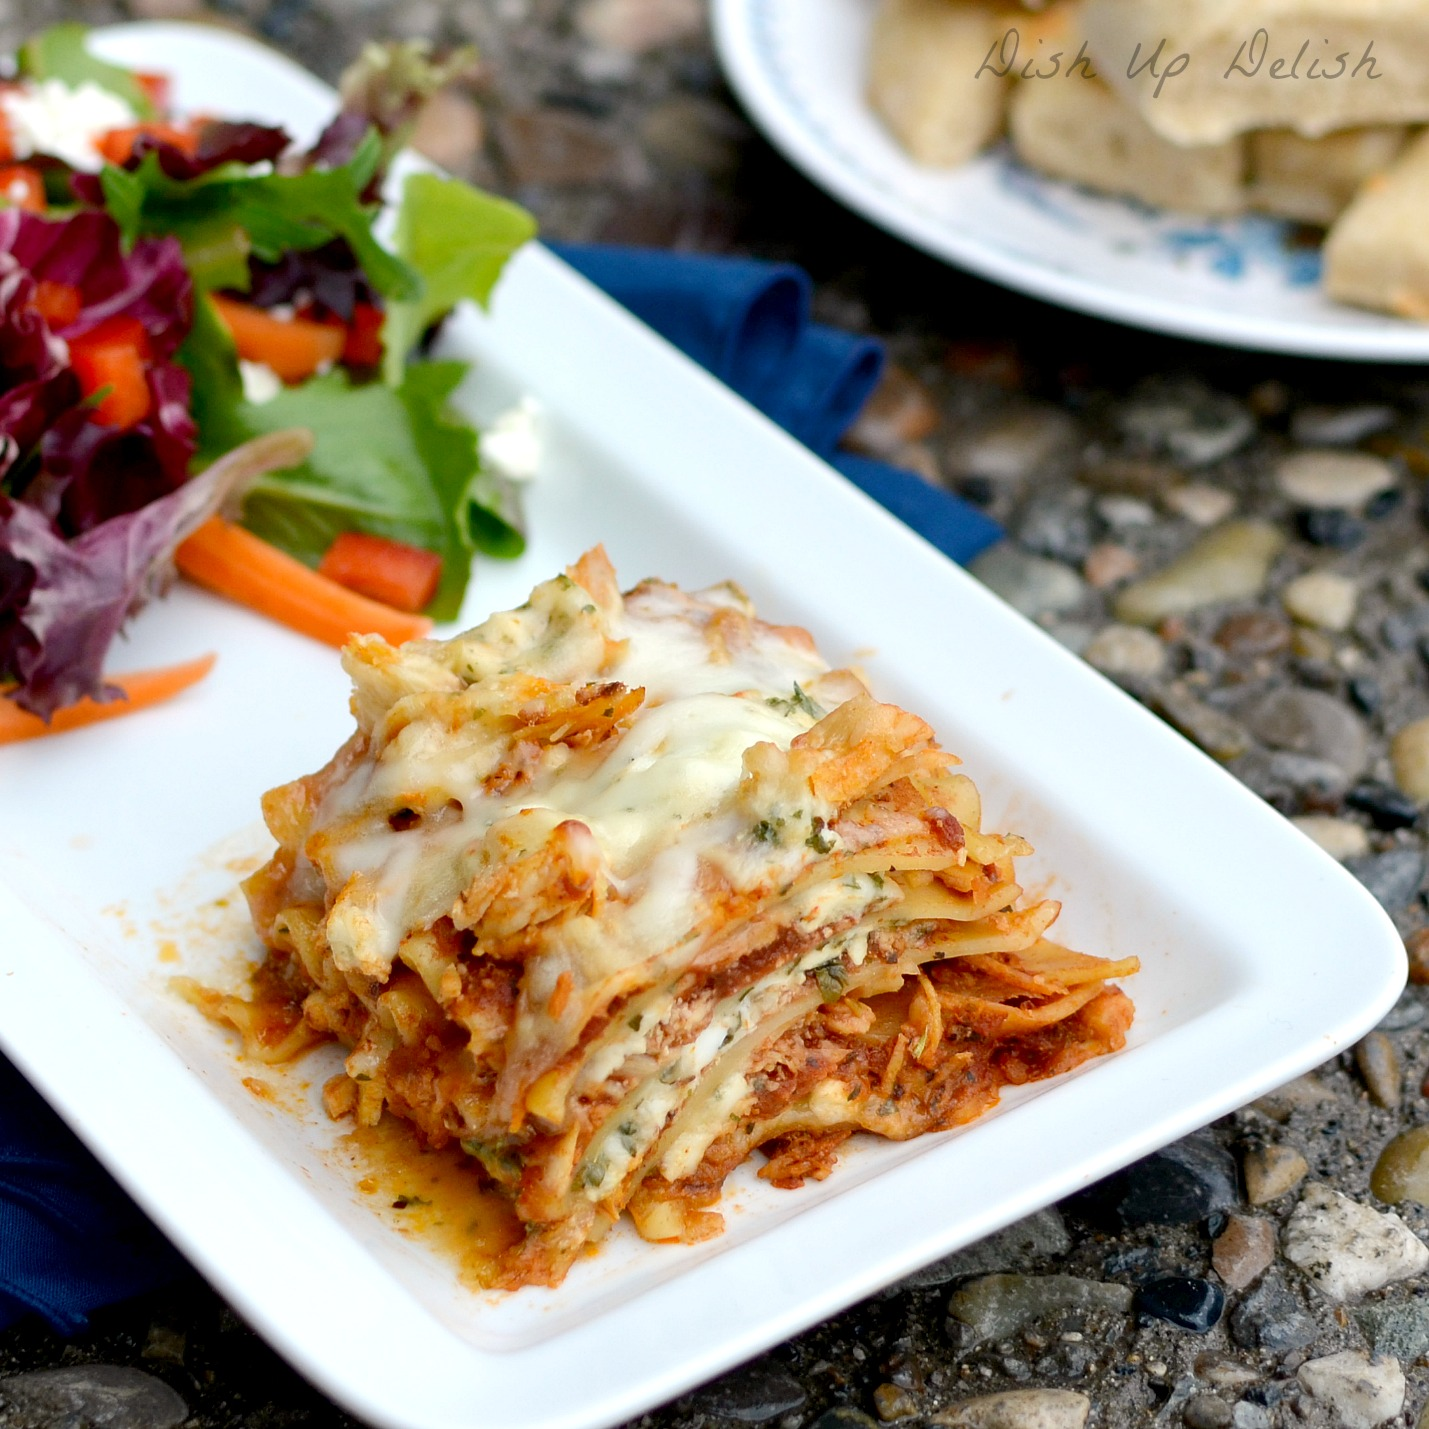 BBQ Chicken Lasagna at Dish Up Delish